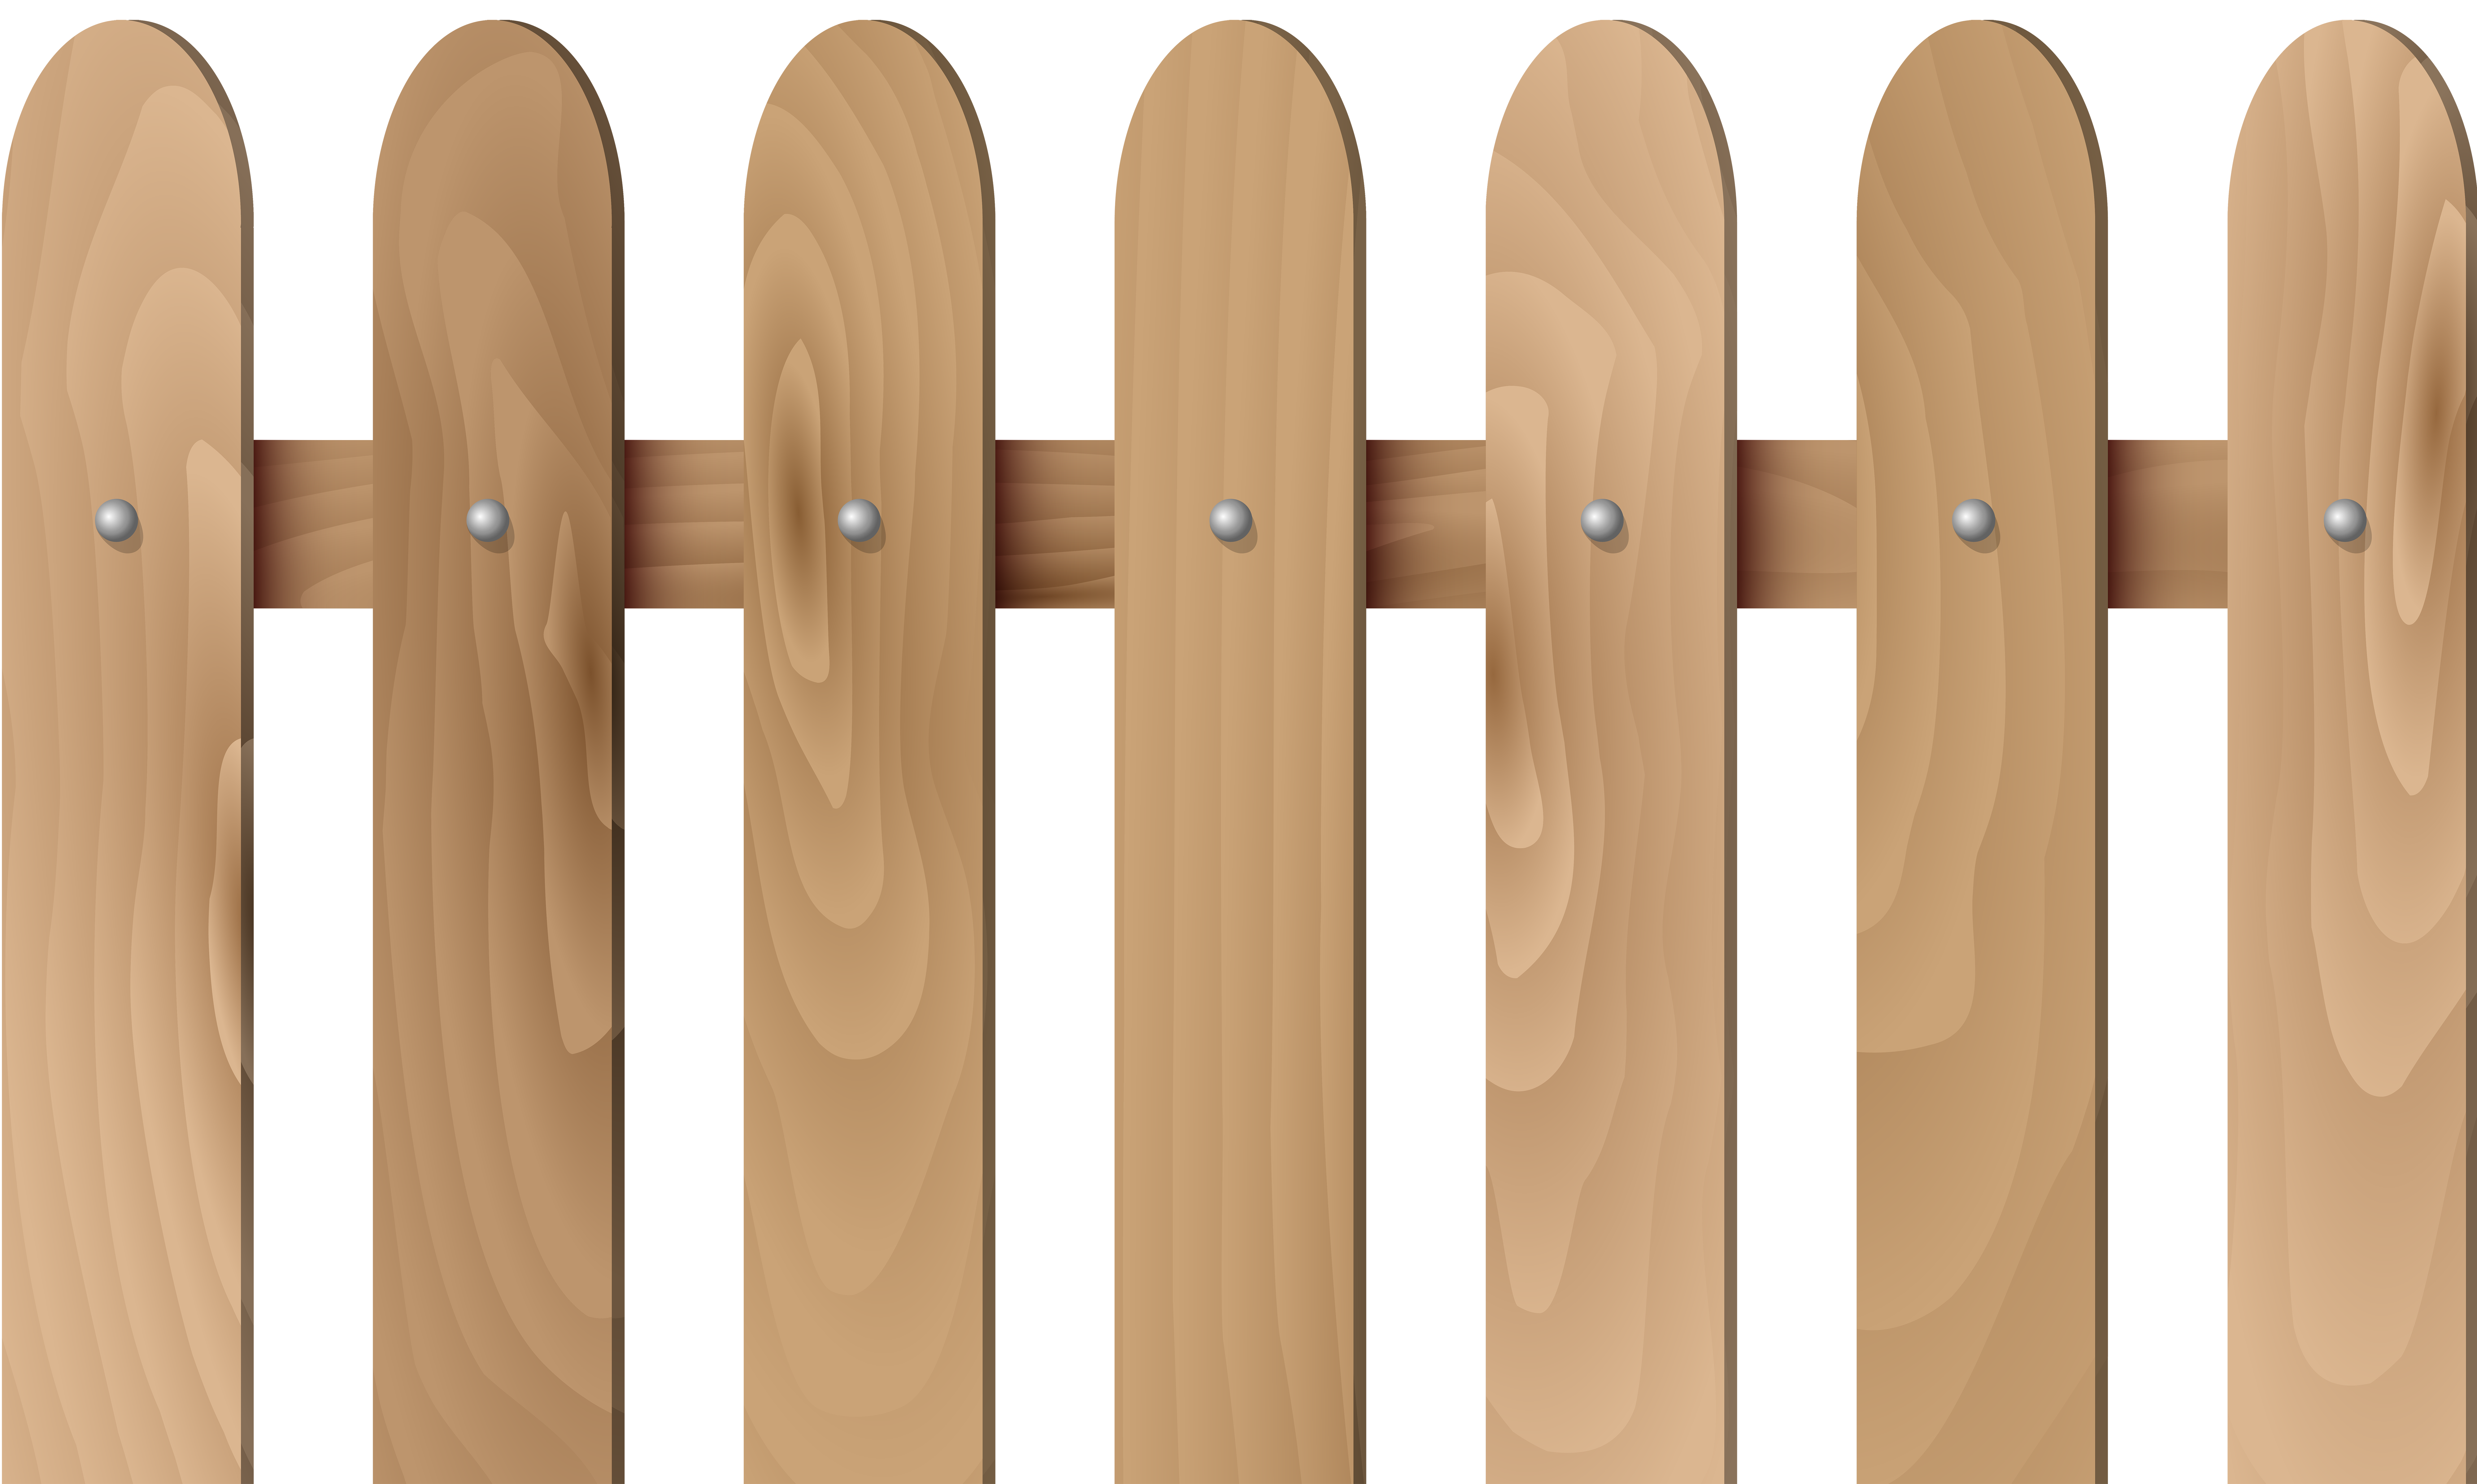 Fence clipart wood fence. Wooden transparent png clip